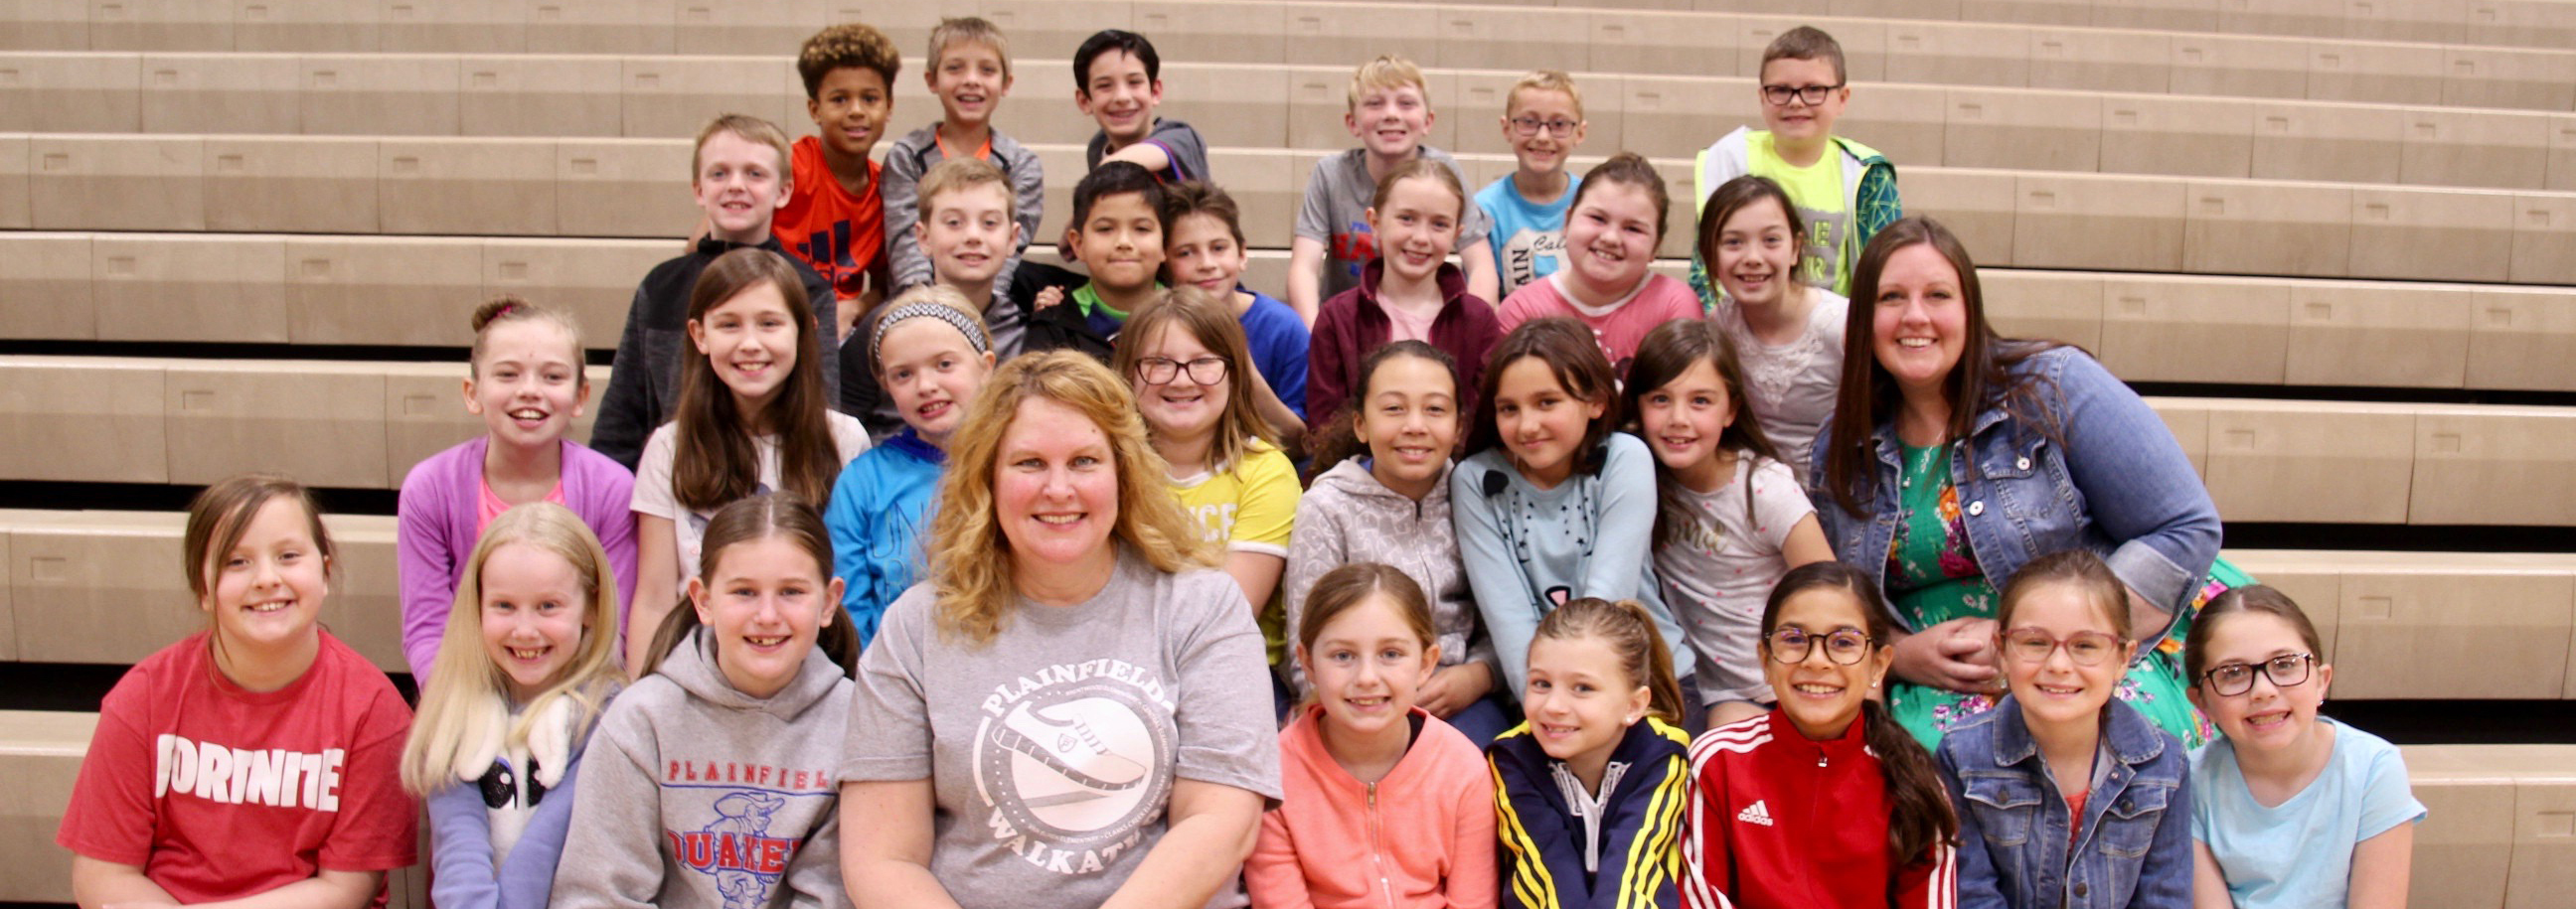 Mrs. Judd's third grade class won the class earnings award from this year's Walkathon.